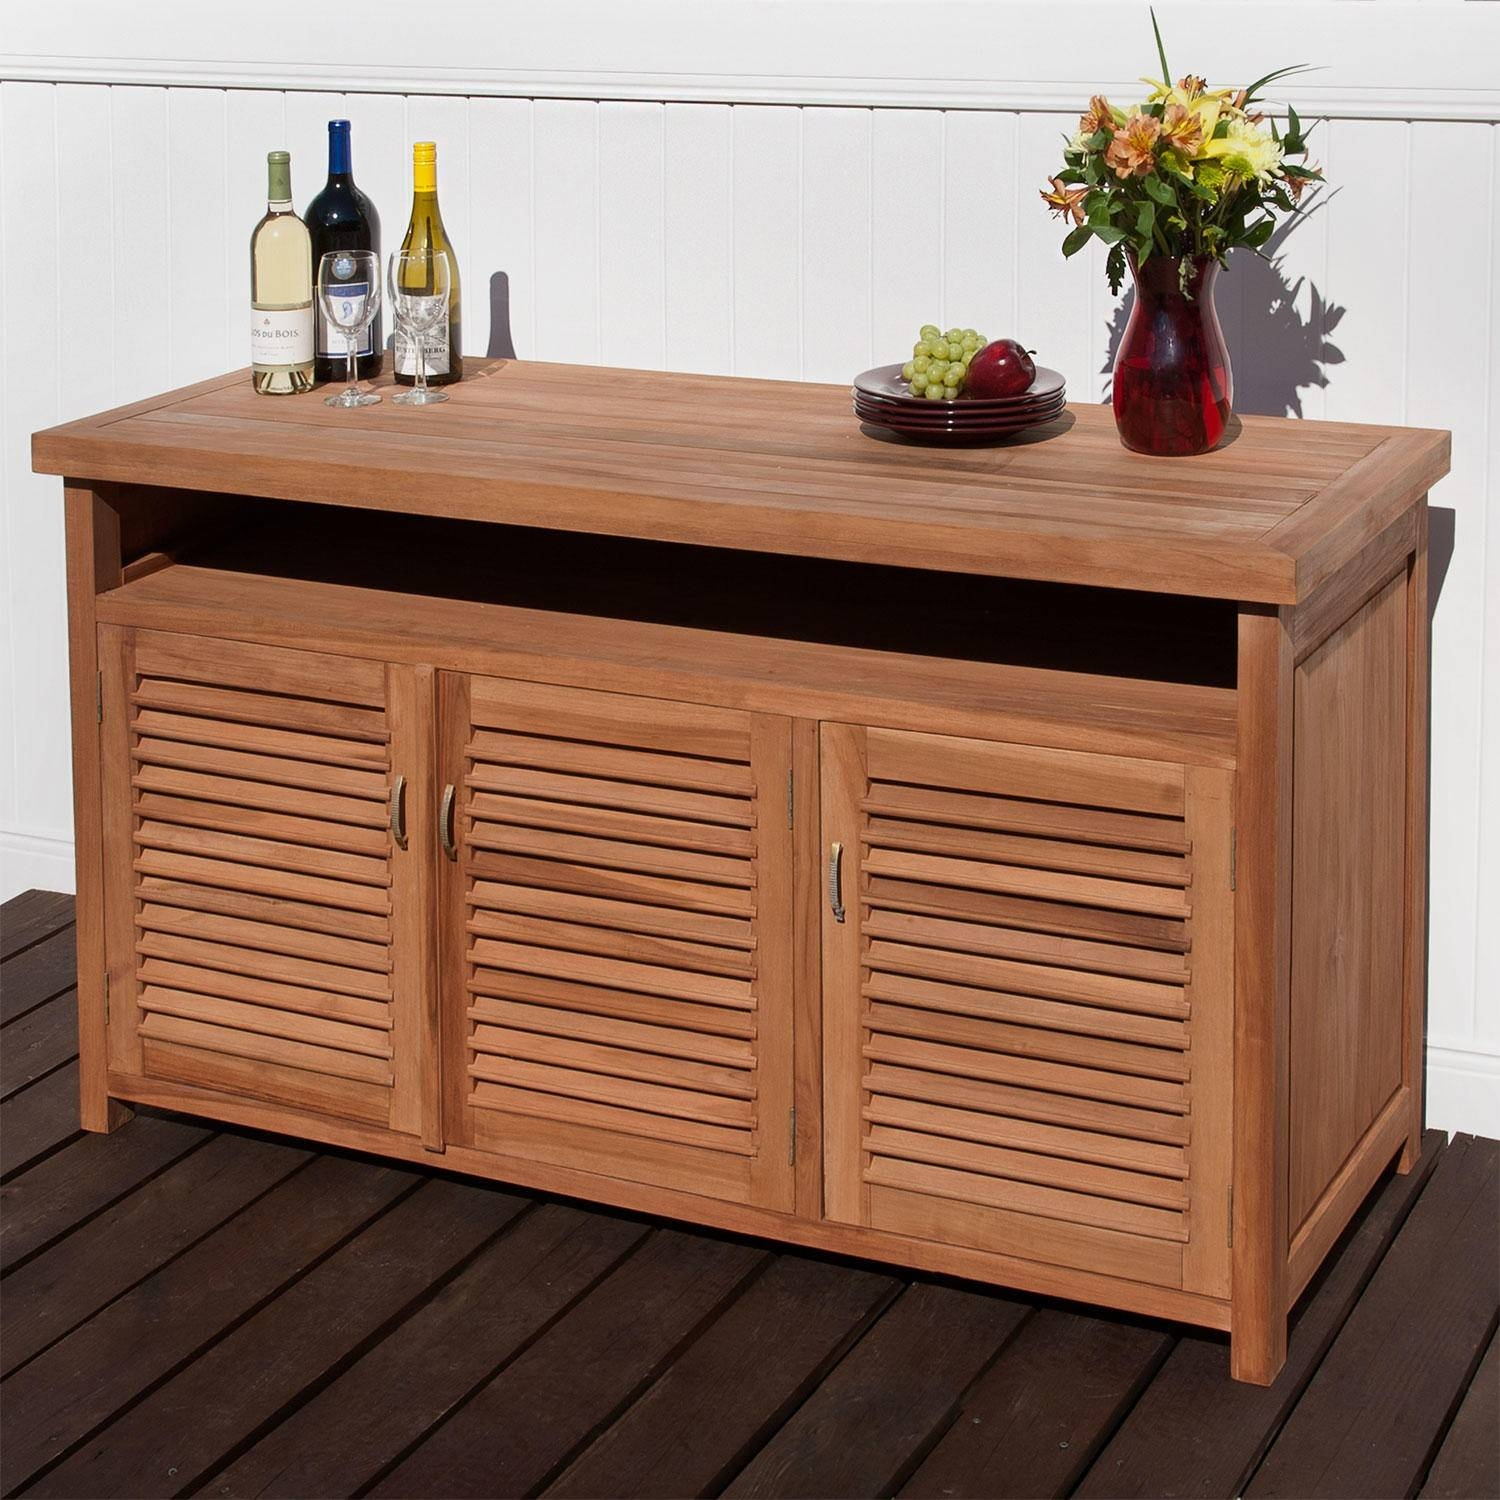 Teak Outdoor Buffet With Storage – Outdoor With Regard To Outdoor Sideboards And Buffets (View 1 of 15)